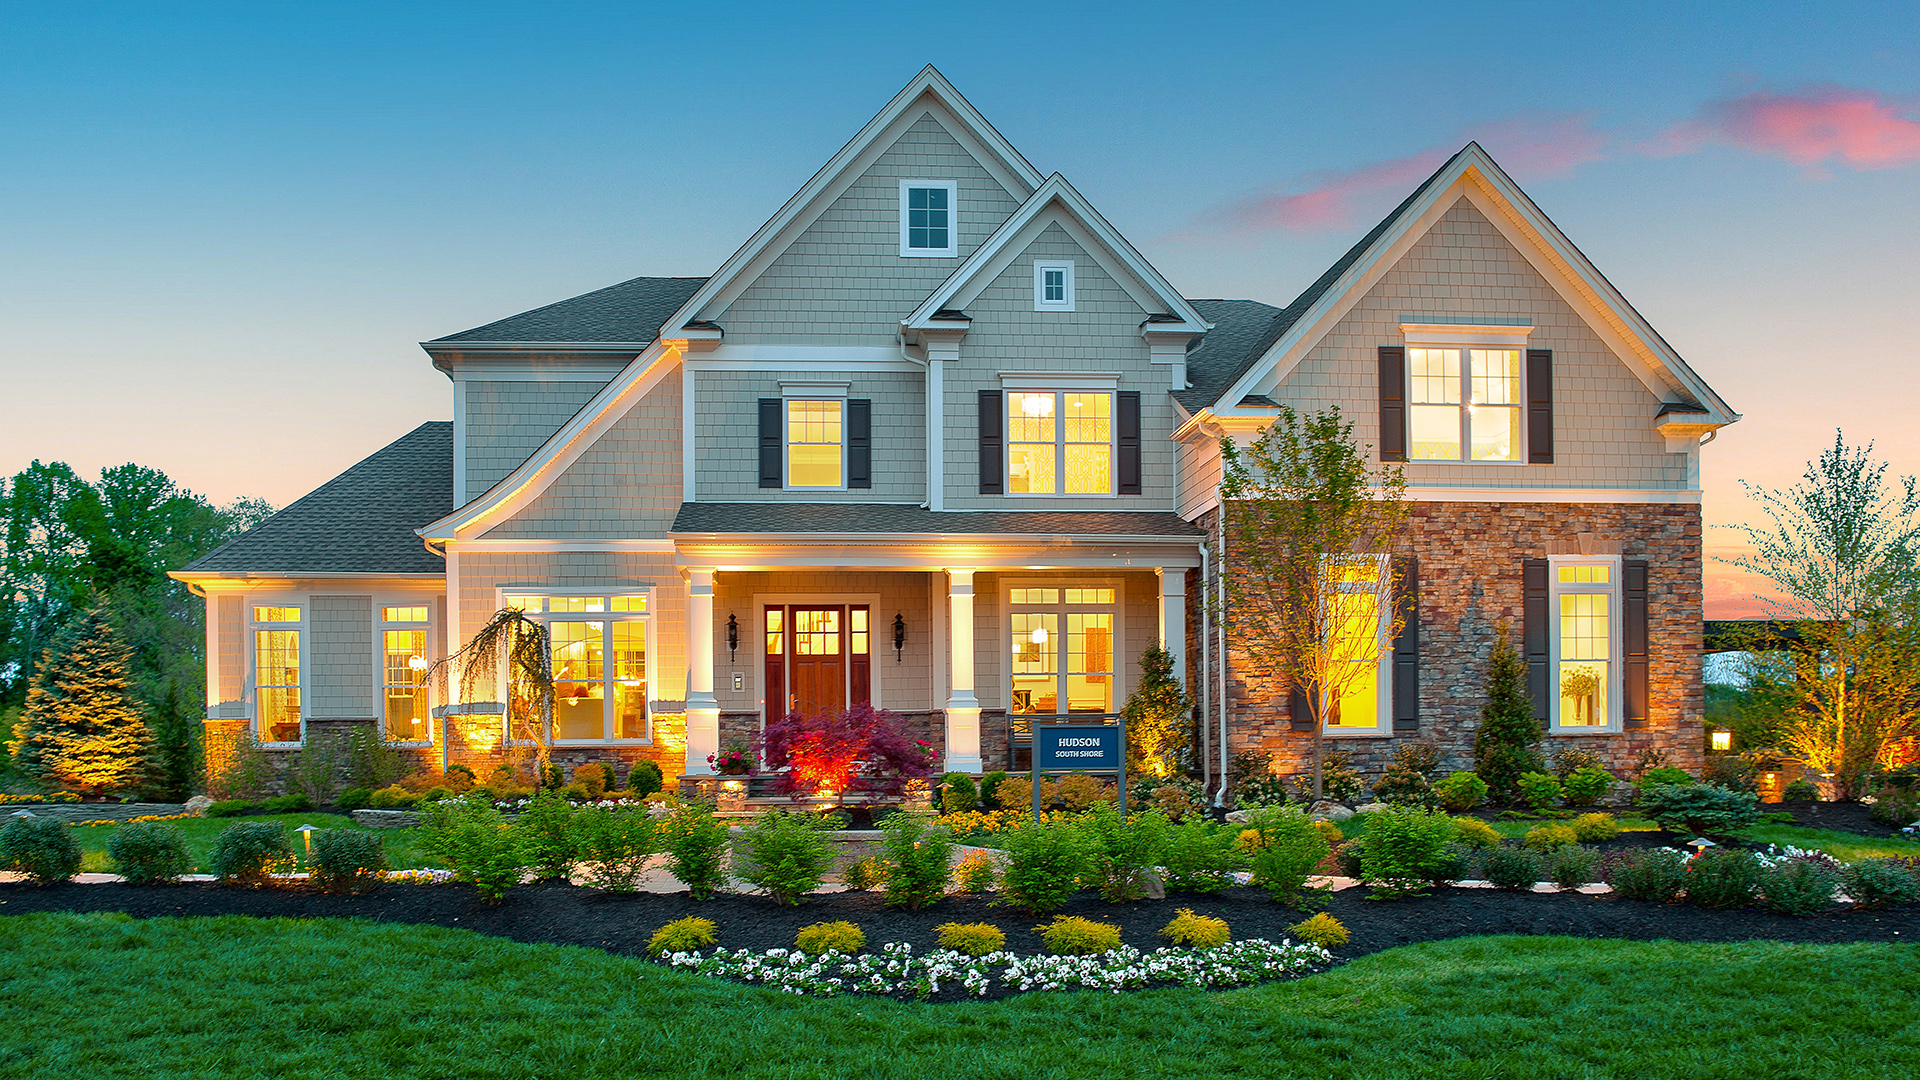 New luxury homes for sale in lincroft nj estates at for Nj house builders